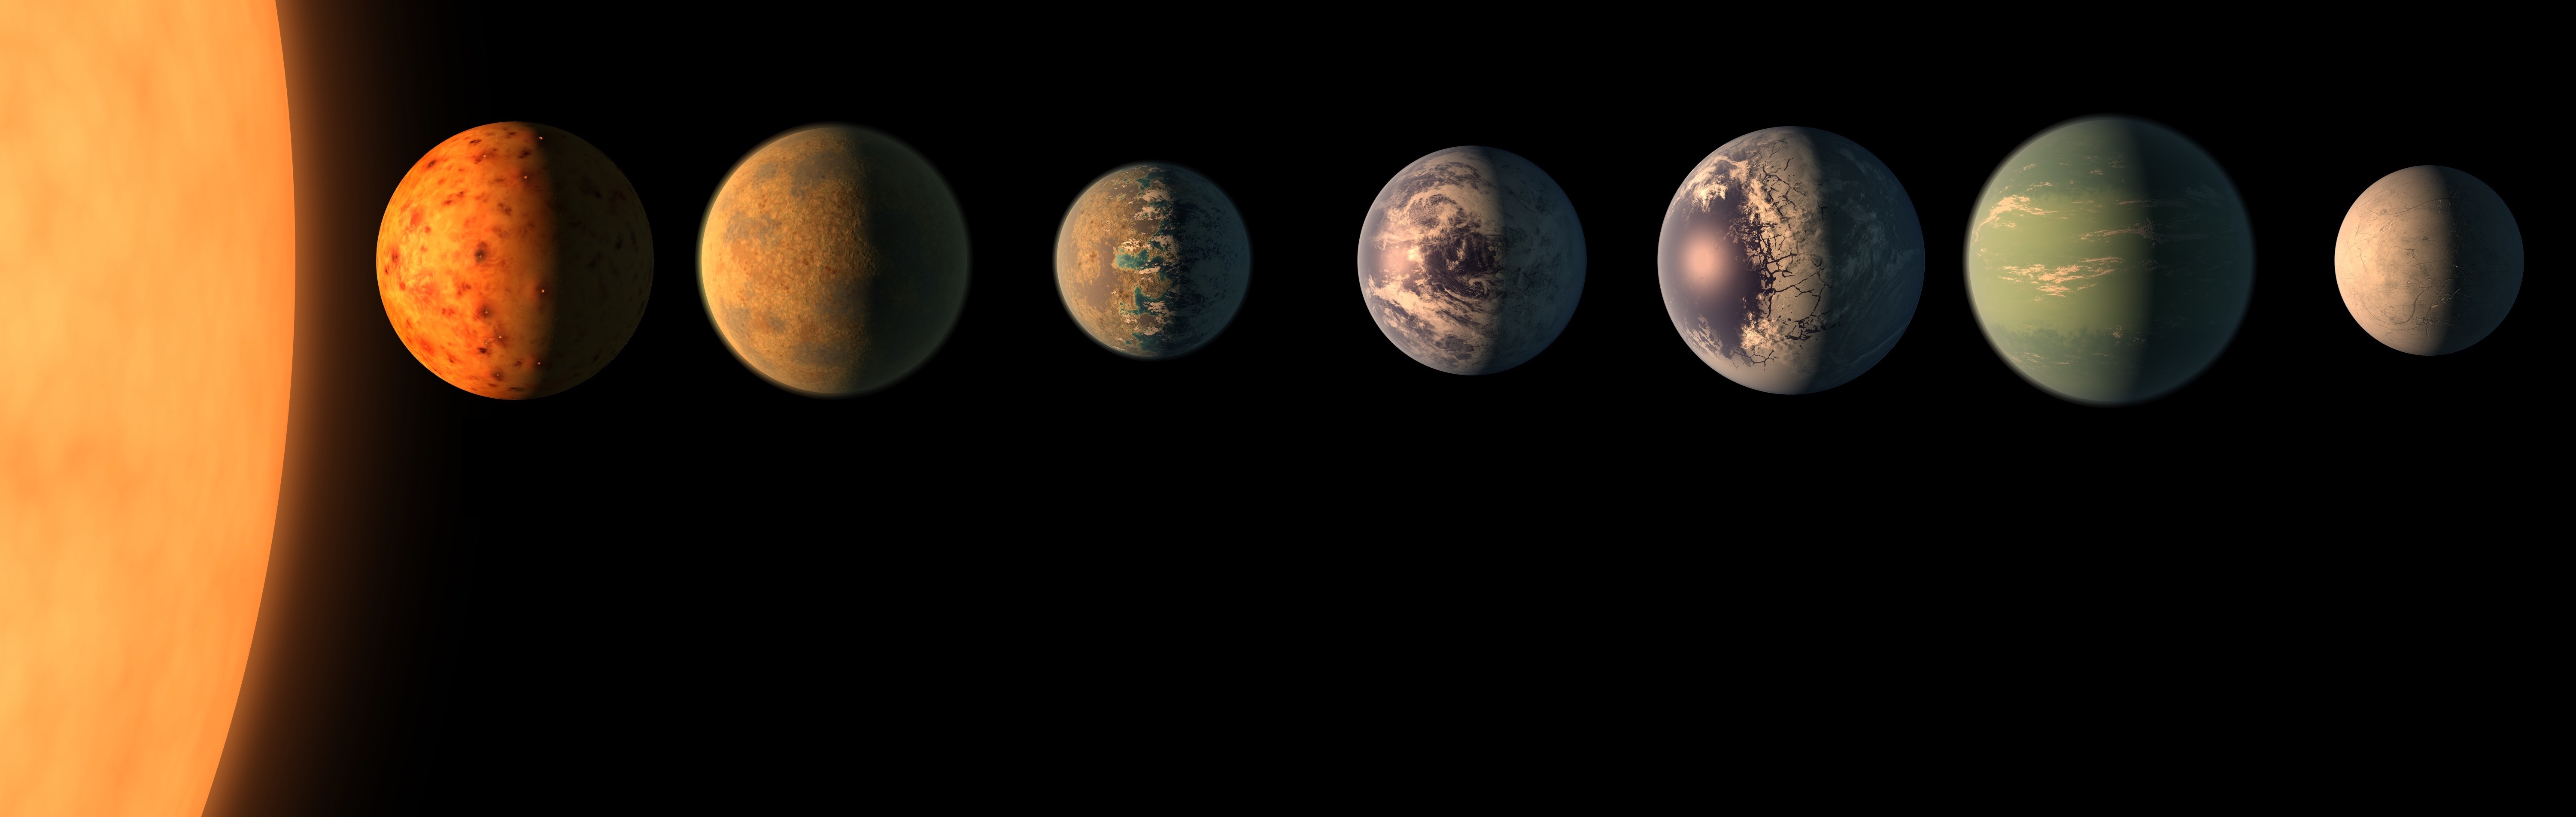 Astronomers Find Extrasolar System With Six Earth-Like Planets, Maybe Seven